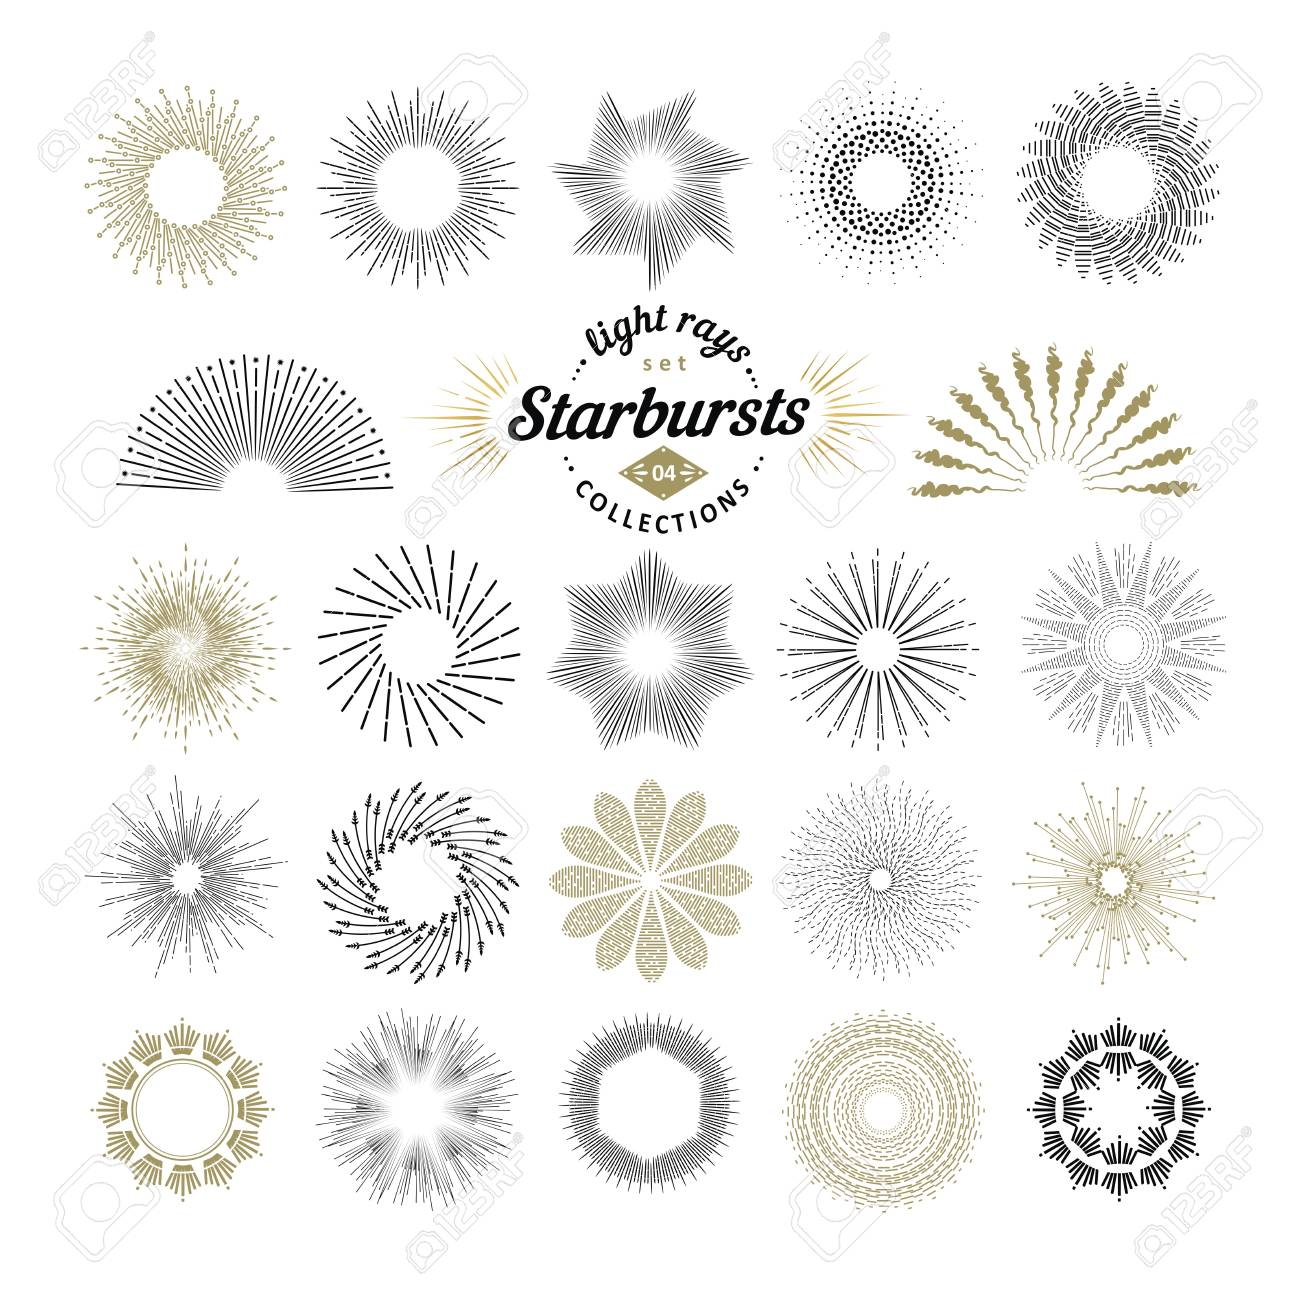 rays and starburst design elements collection of sunburst vintage